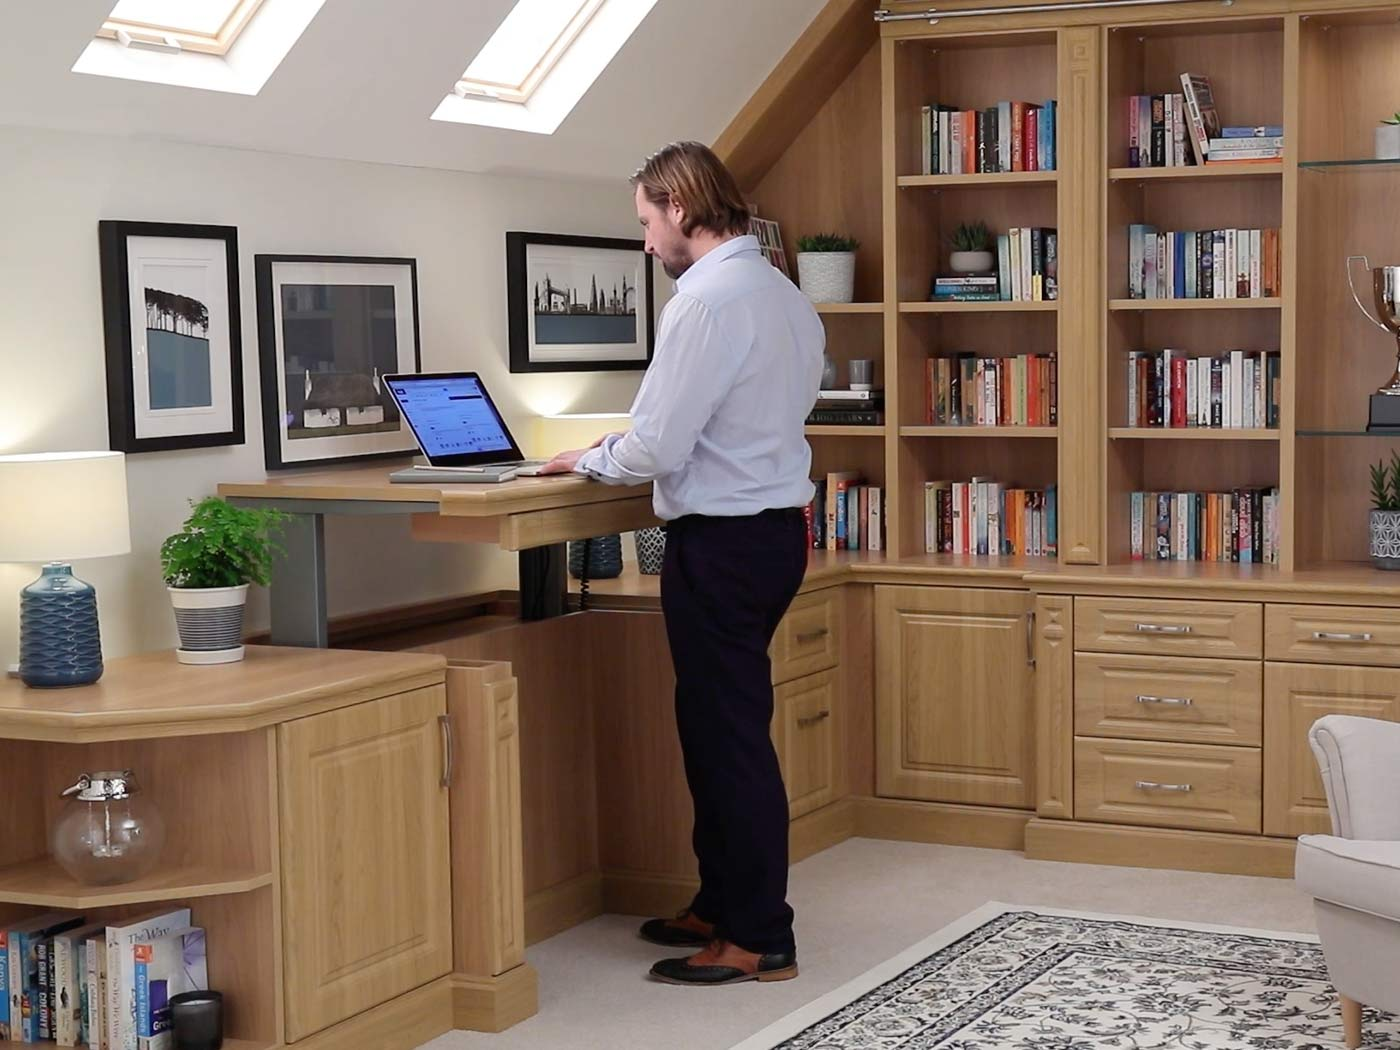 Strachan fitted study bedrooms with sit-stand desk